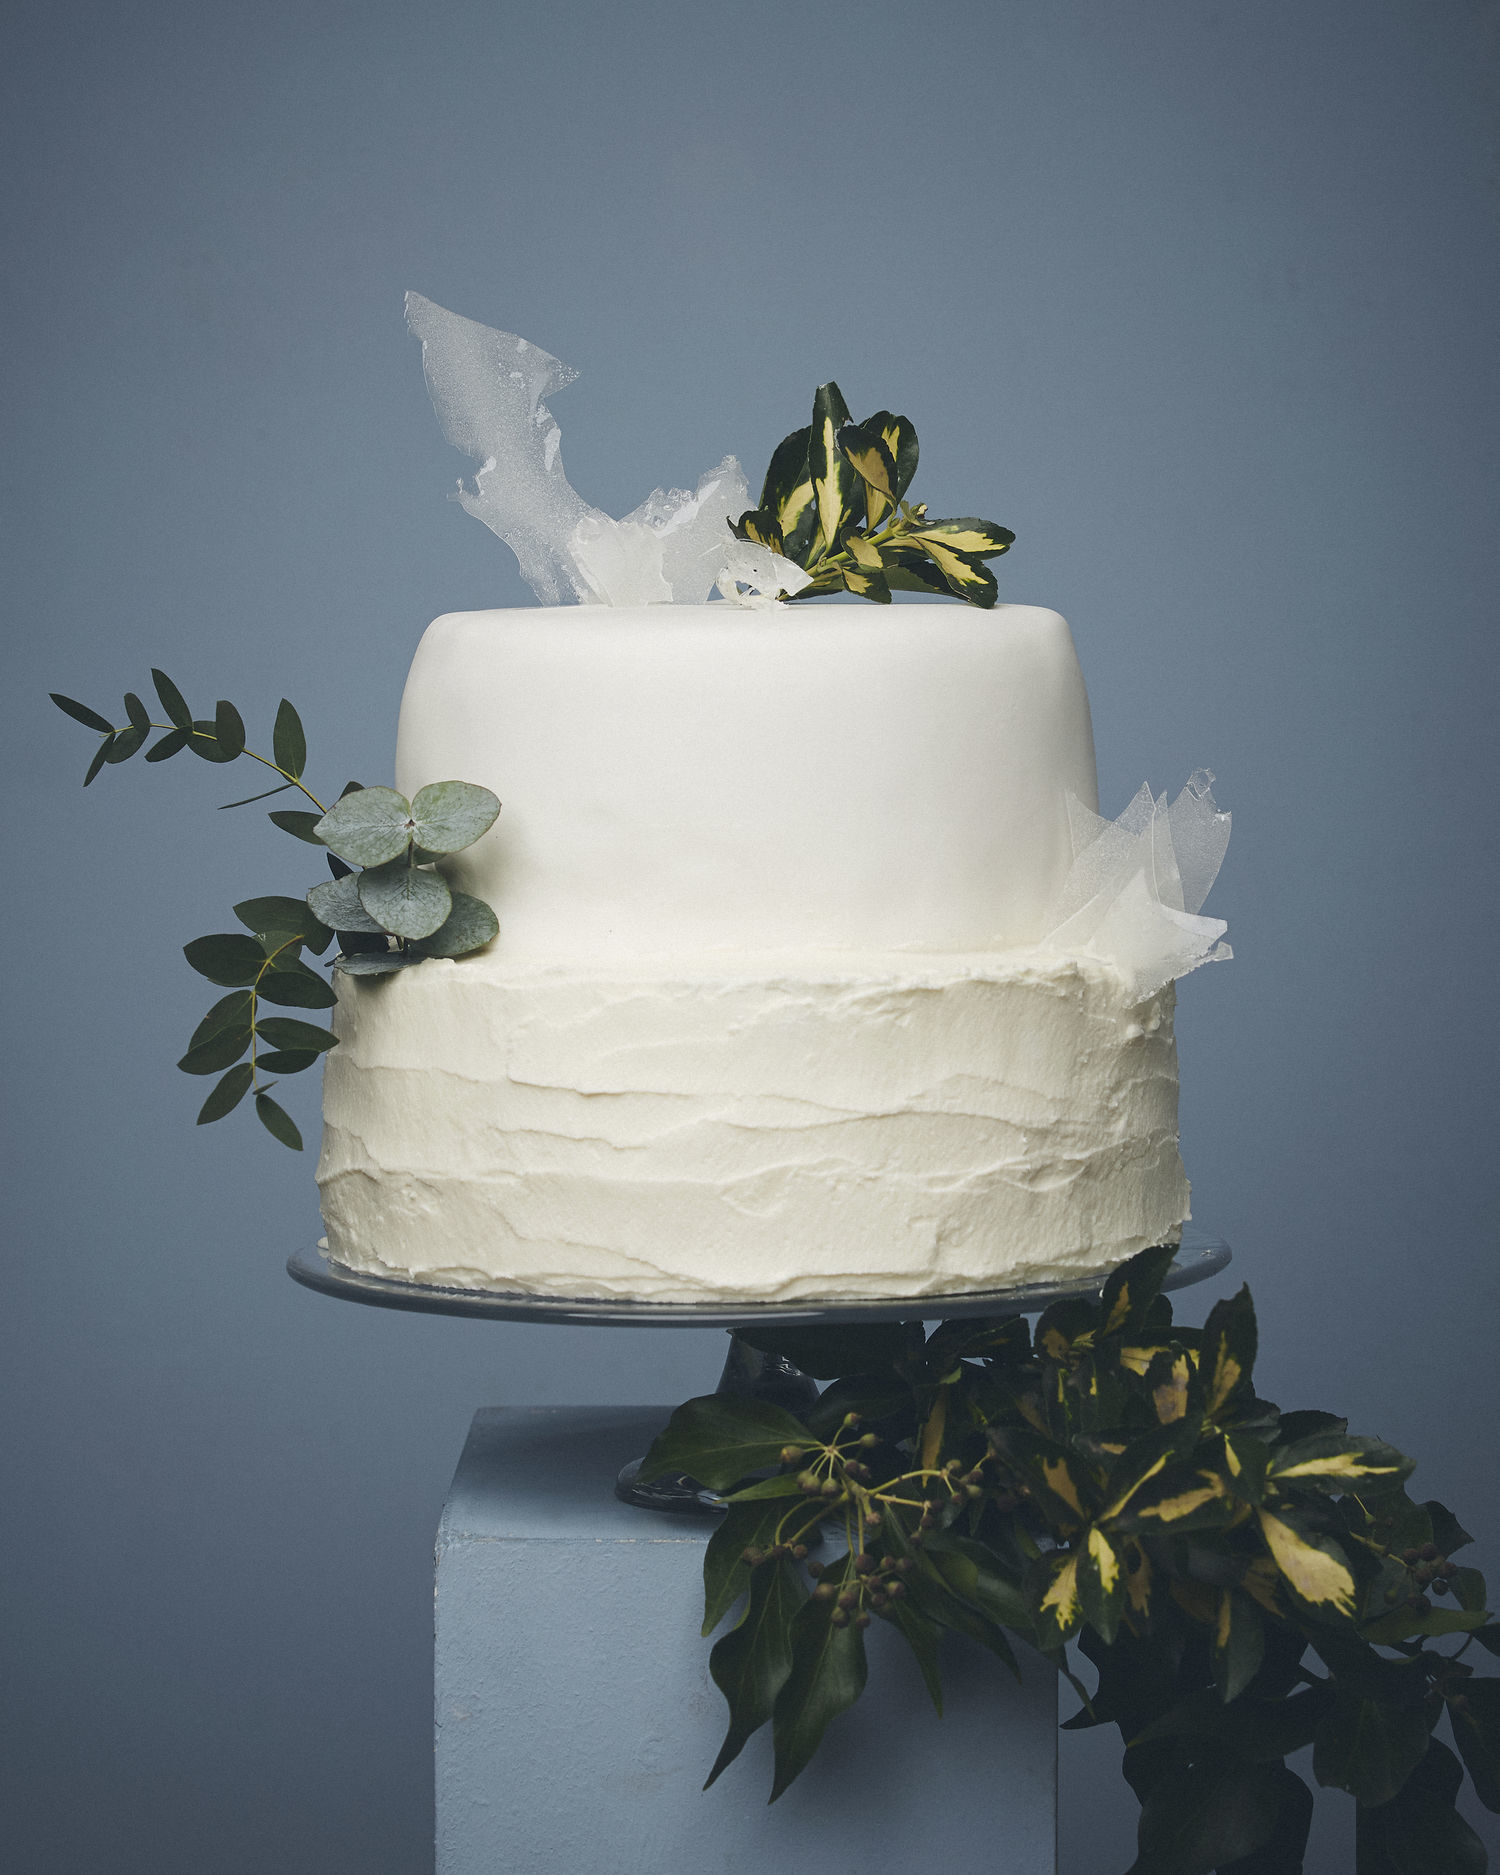 Wedding Cake - 1 by Nedill